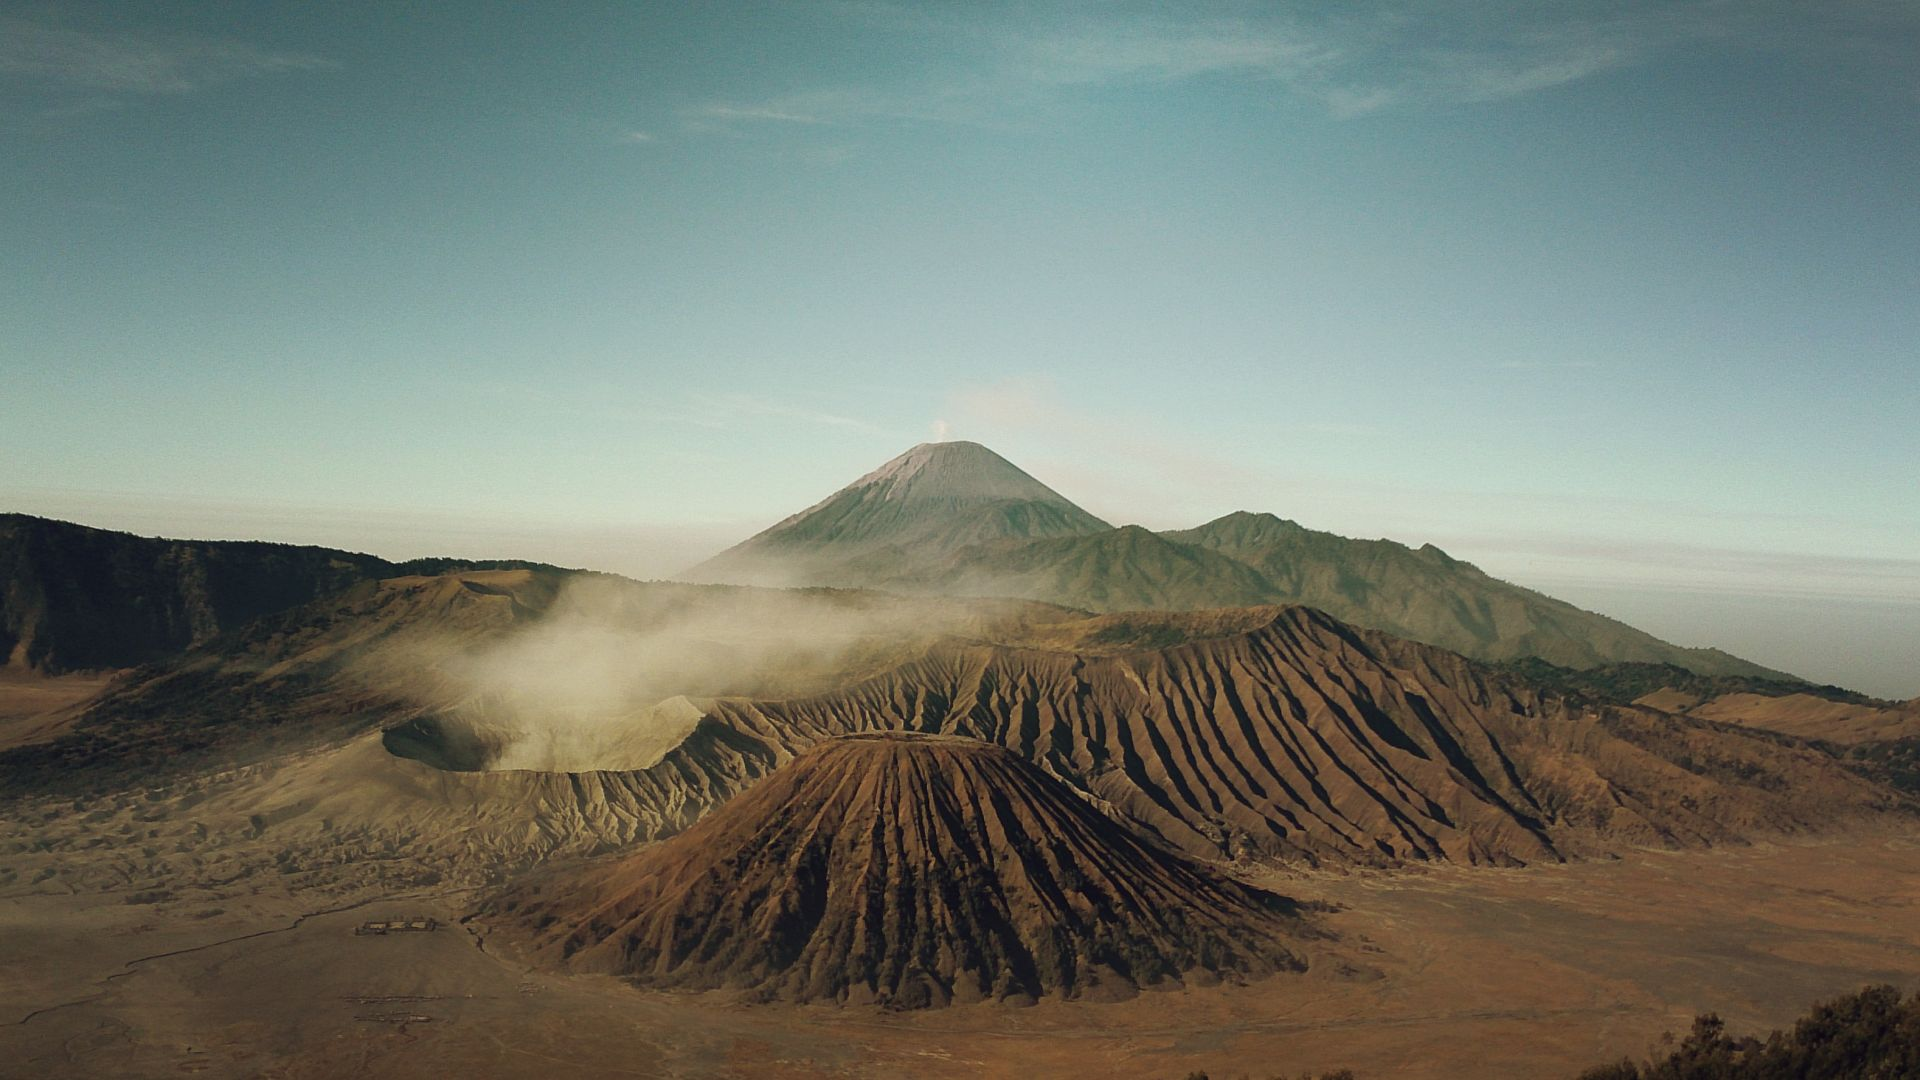 Бром, 4k, 5k, Индонезия, вулкан, песок, Bromo, 4k, 5k wallpaper, Indonesia, volcano, sand (horizontal)